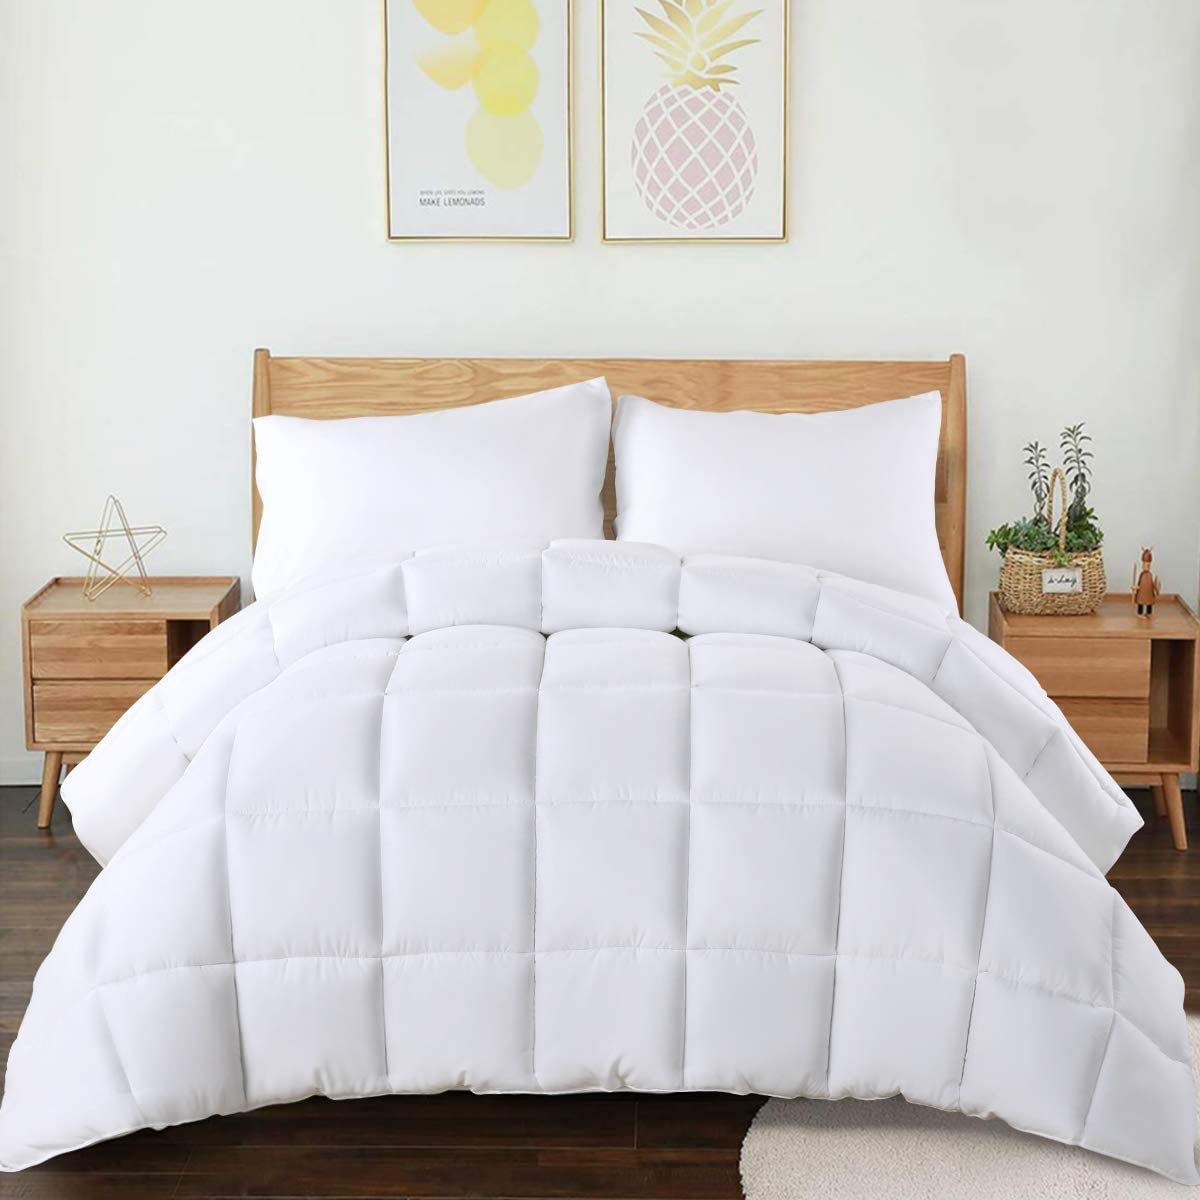 CHOKIT All Season King Comforter Soft Quilted Down Alternative Duvet Insert with Corner Loops,Box Stitched Reversible Fluffy Hotel Collection, White, 102 X 90 Inches